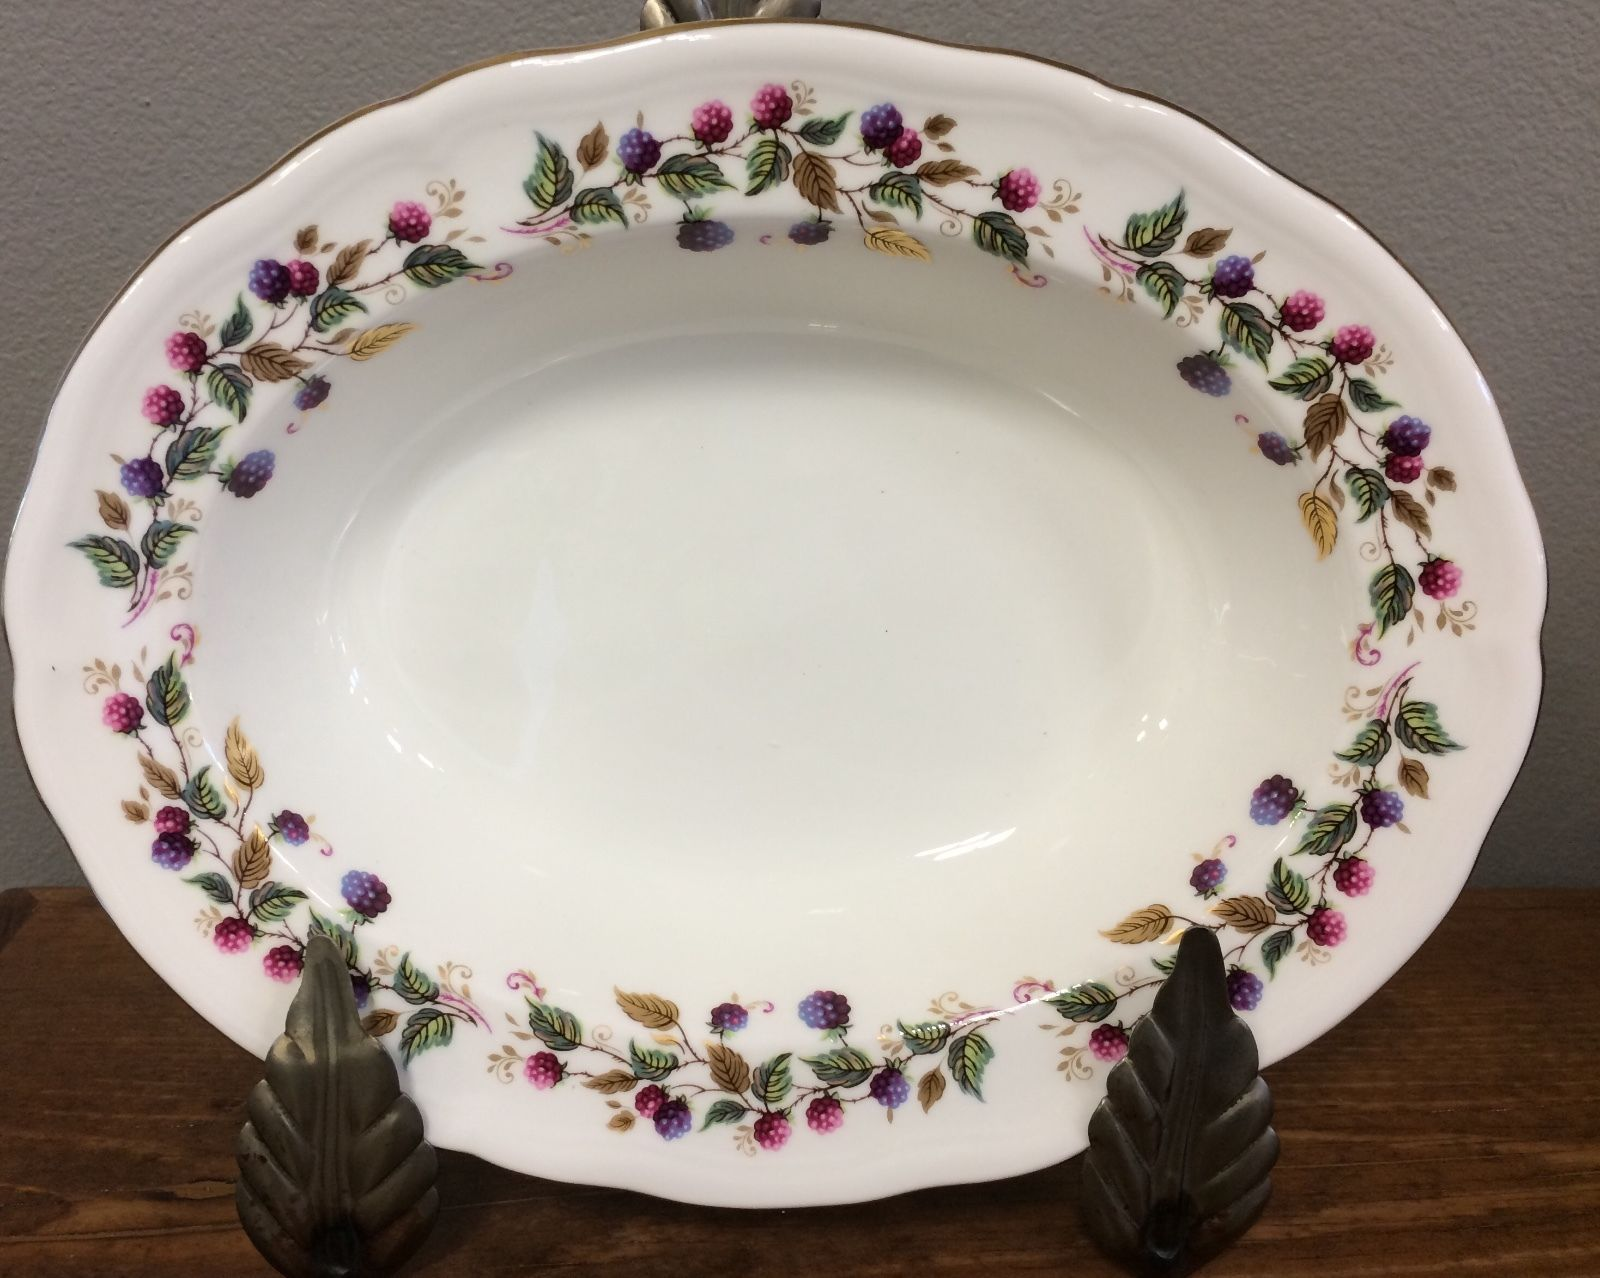 Aynsley Bramble Time Oval Serving Bowl Berries Scalloped Porcelain England RARE!